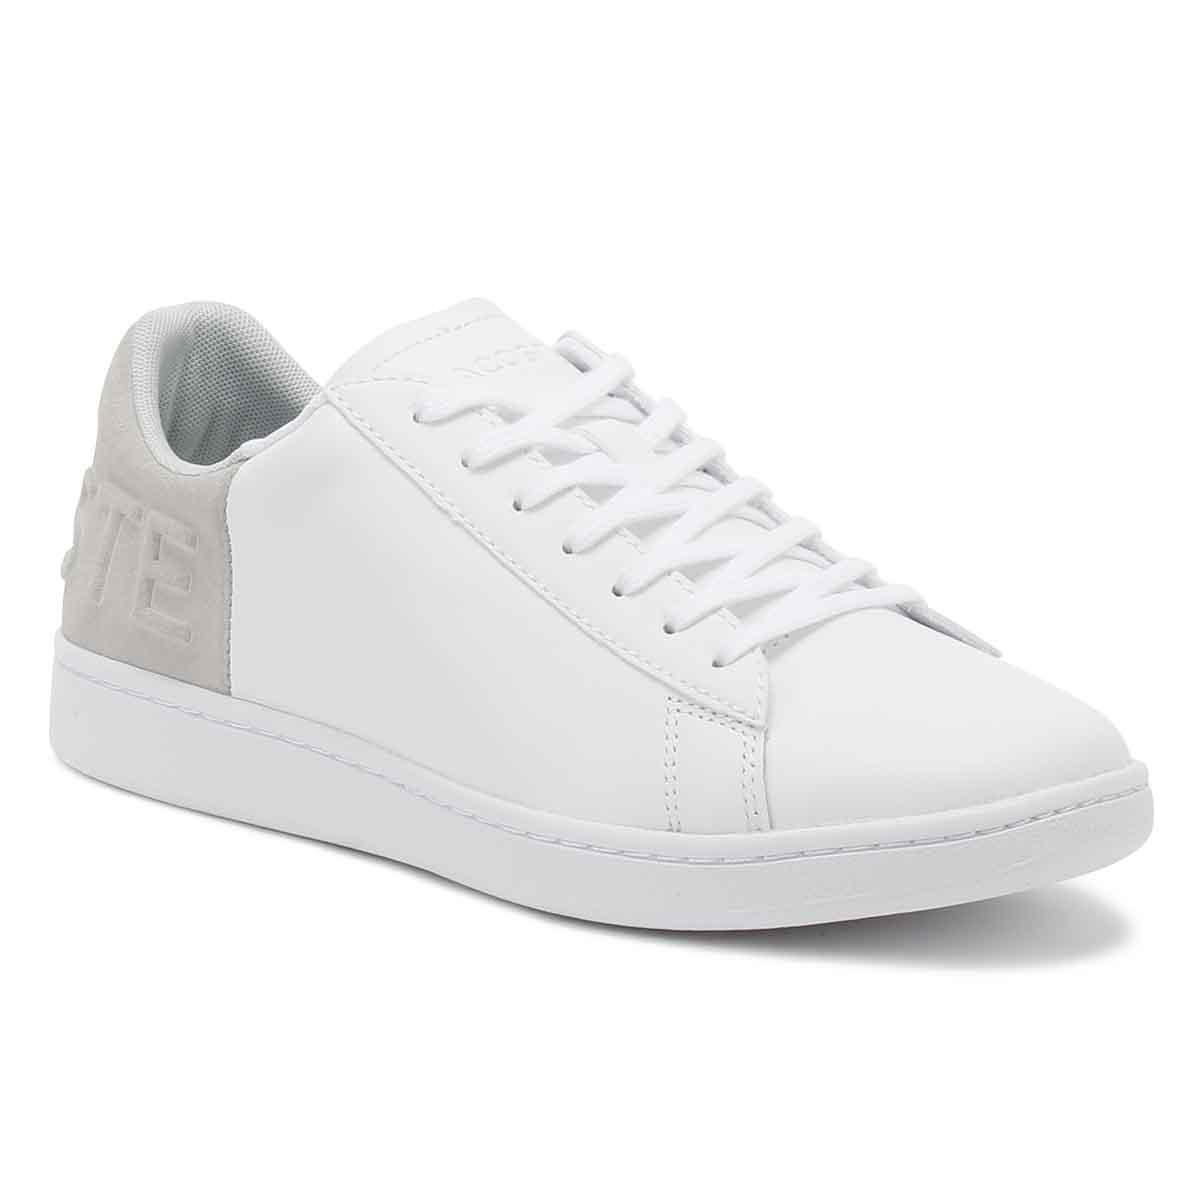 34abe55a0 Lacoste Mens White   Light Grey Carnaby Evo 318 6 Trainers in White ...